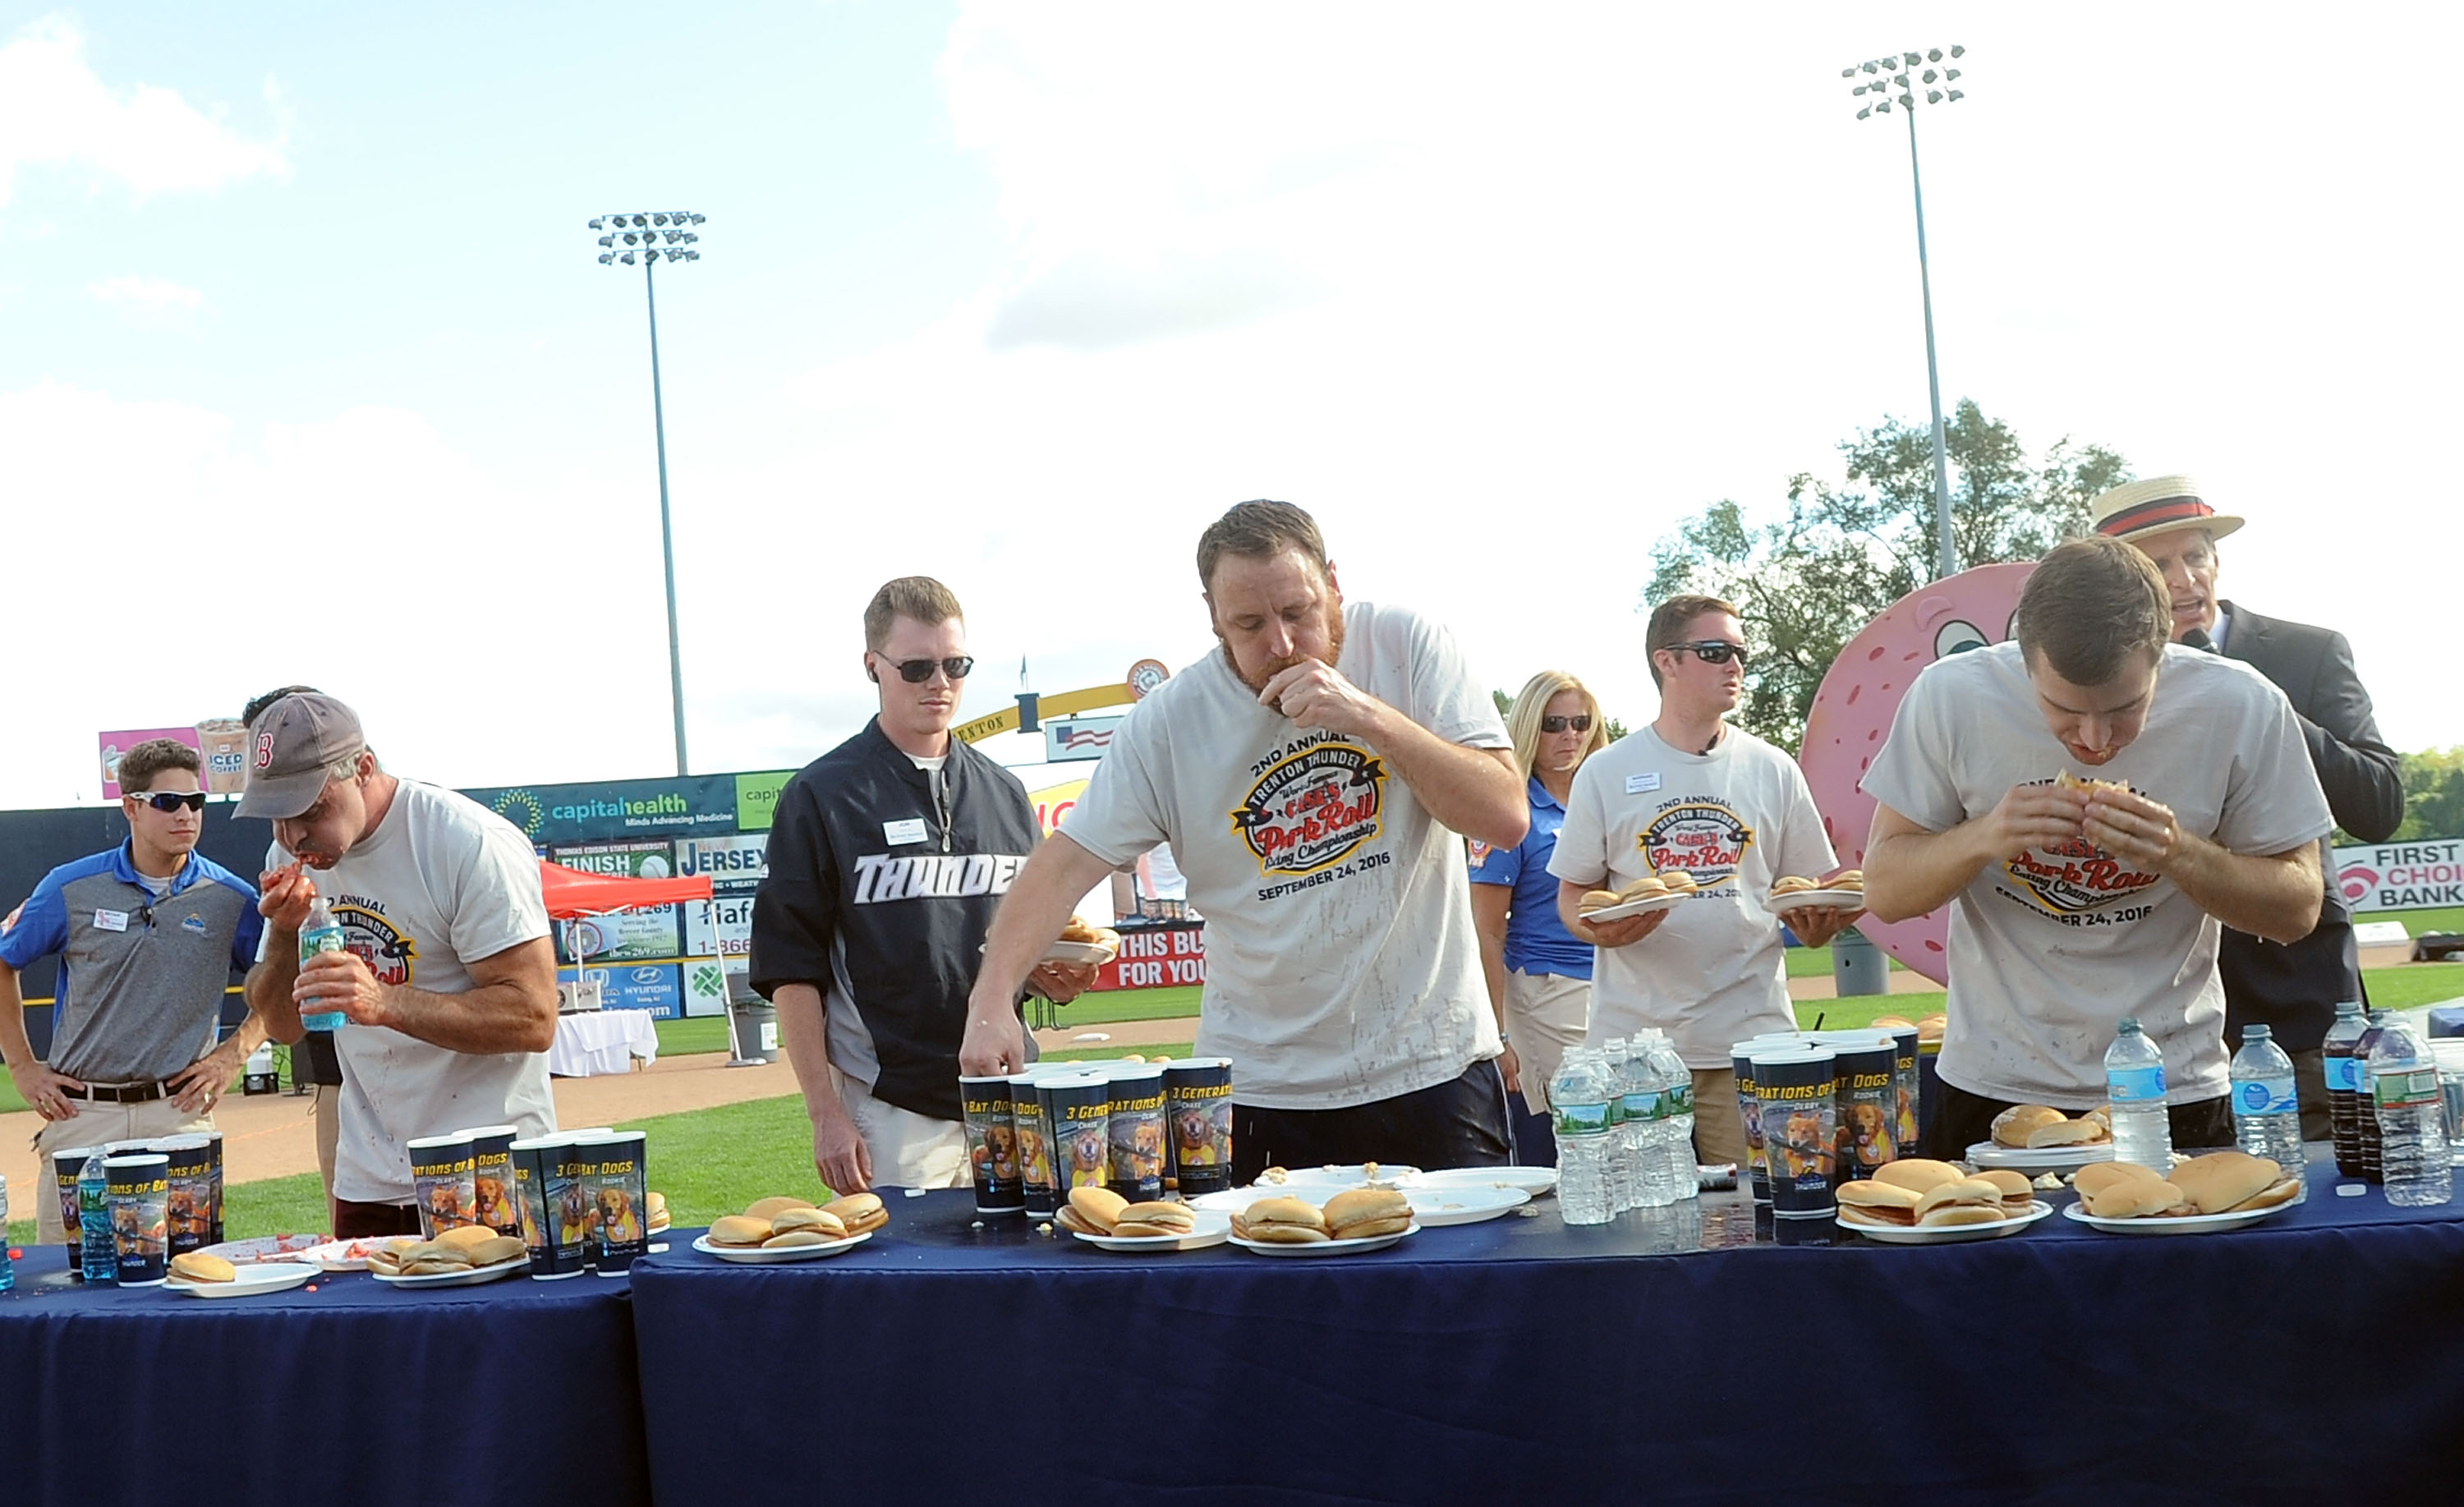 Joey Chestnut and Carmen Cincotti at the 2016 Trenton Thunder World Famous Case's Pork Roll Eating Championship at Arm & Hammer Park on Sept. 24, 2016 in Trenton, New Jersey.